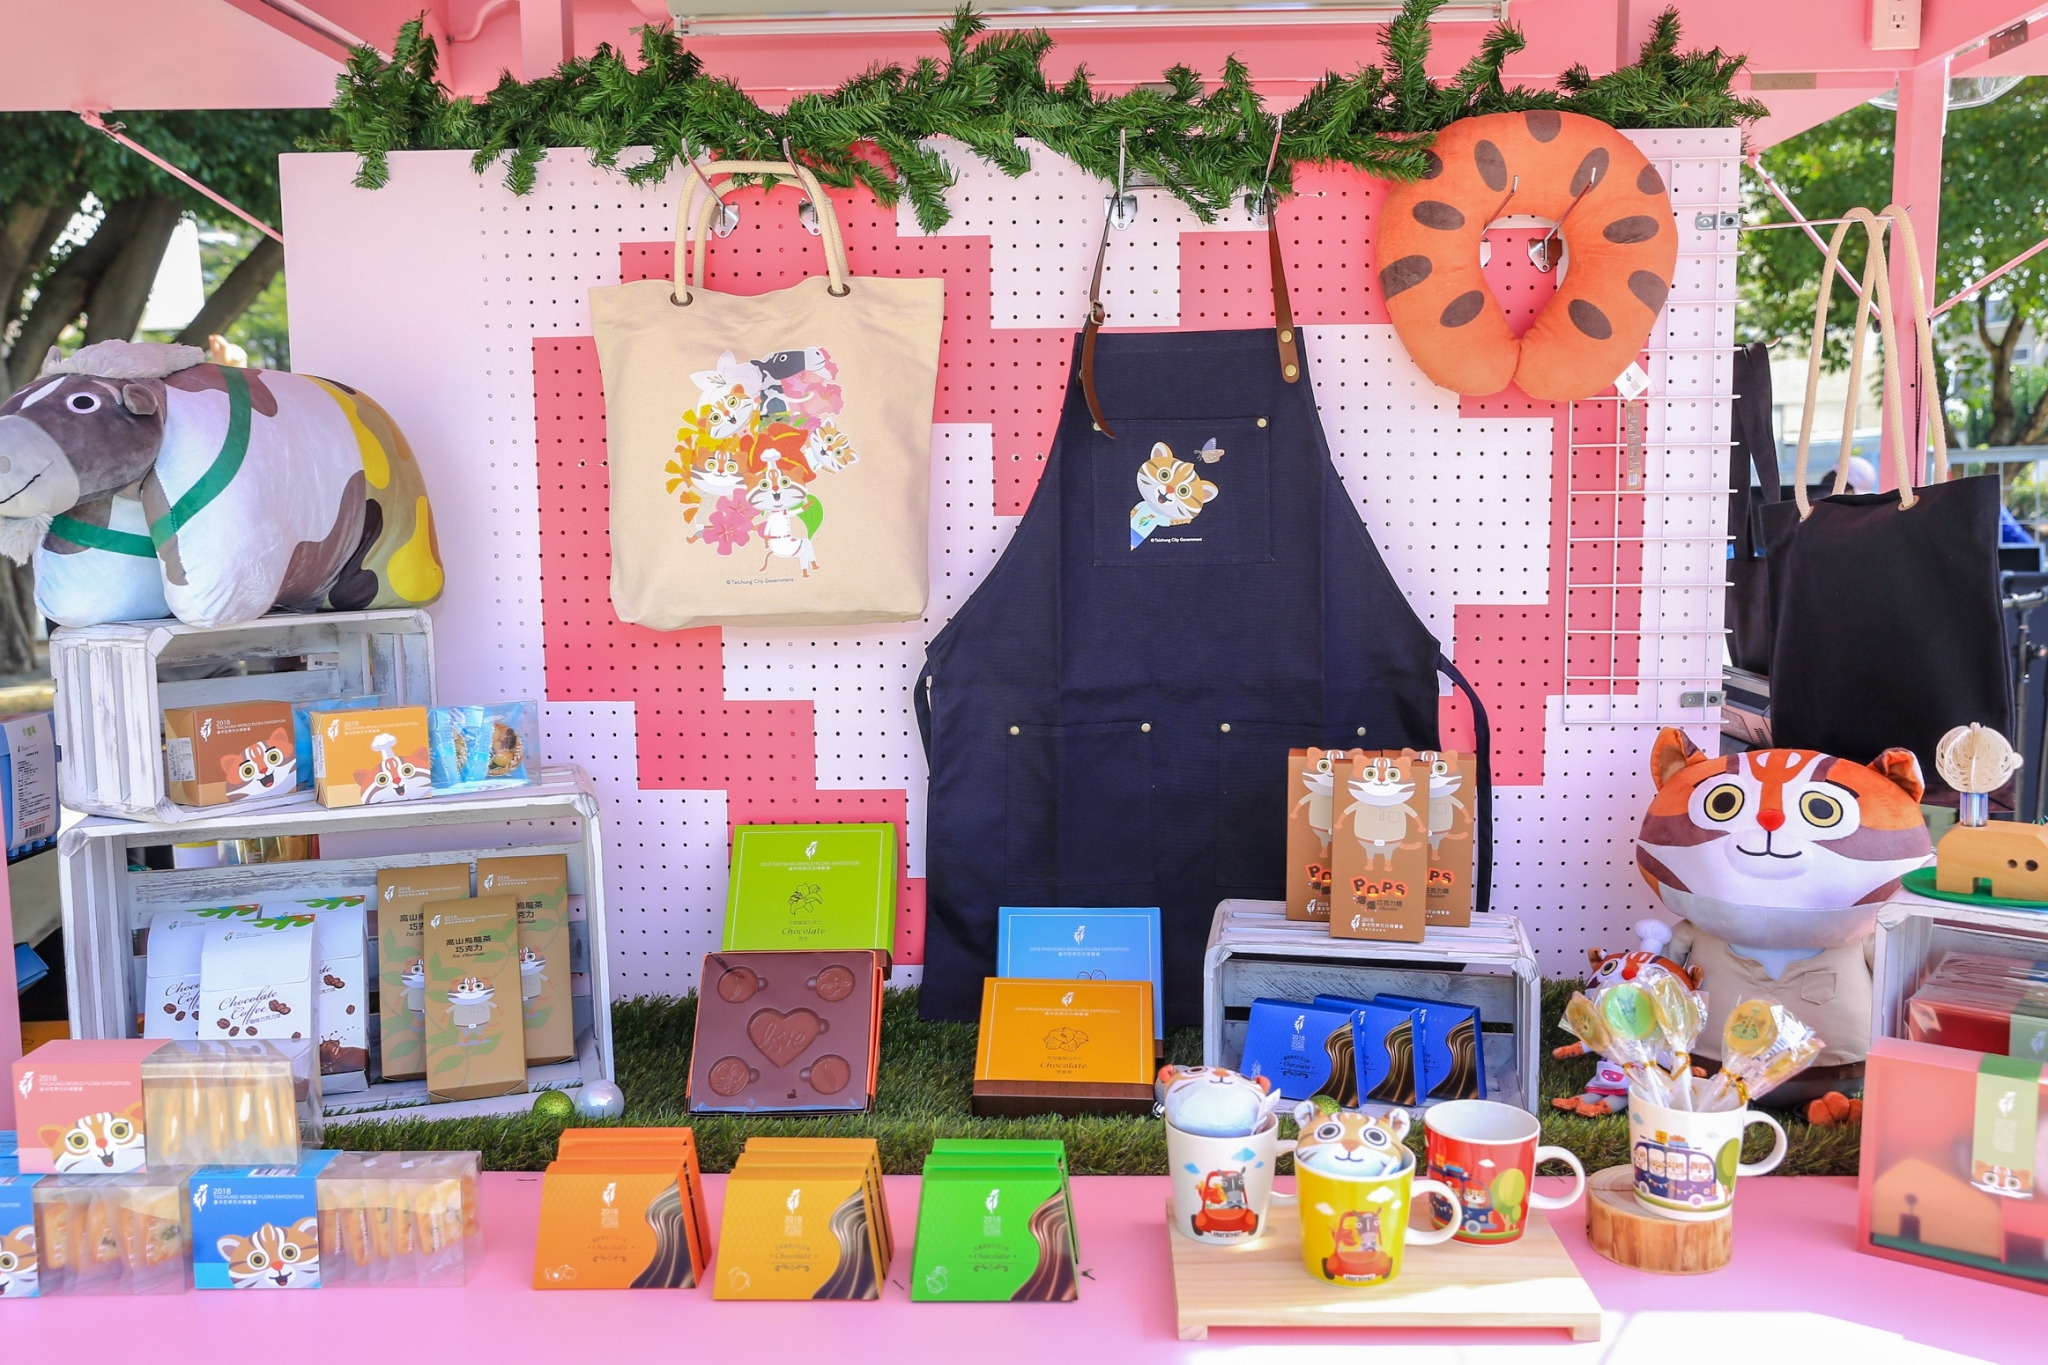 Taichung Flora Expo souvenirs, the second wave of new items launched  Wen-yi Lee plays the role as「Happiness buyer」